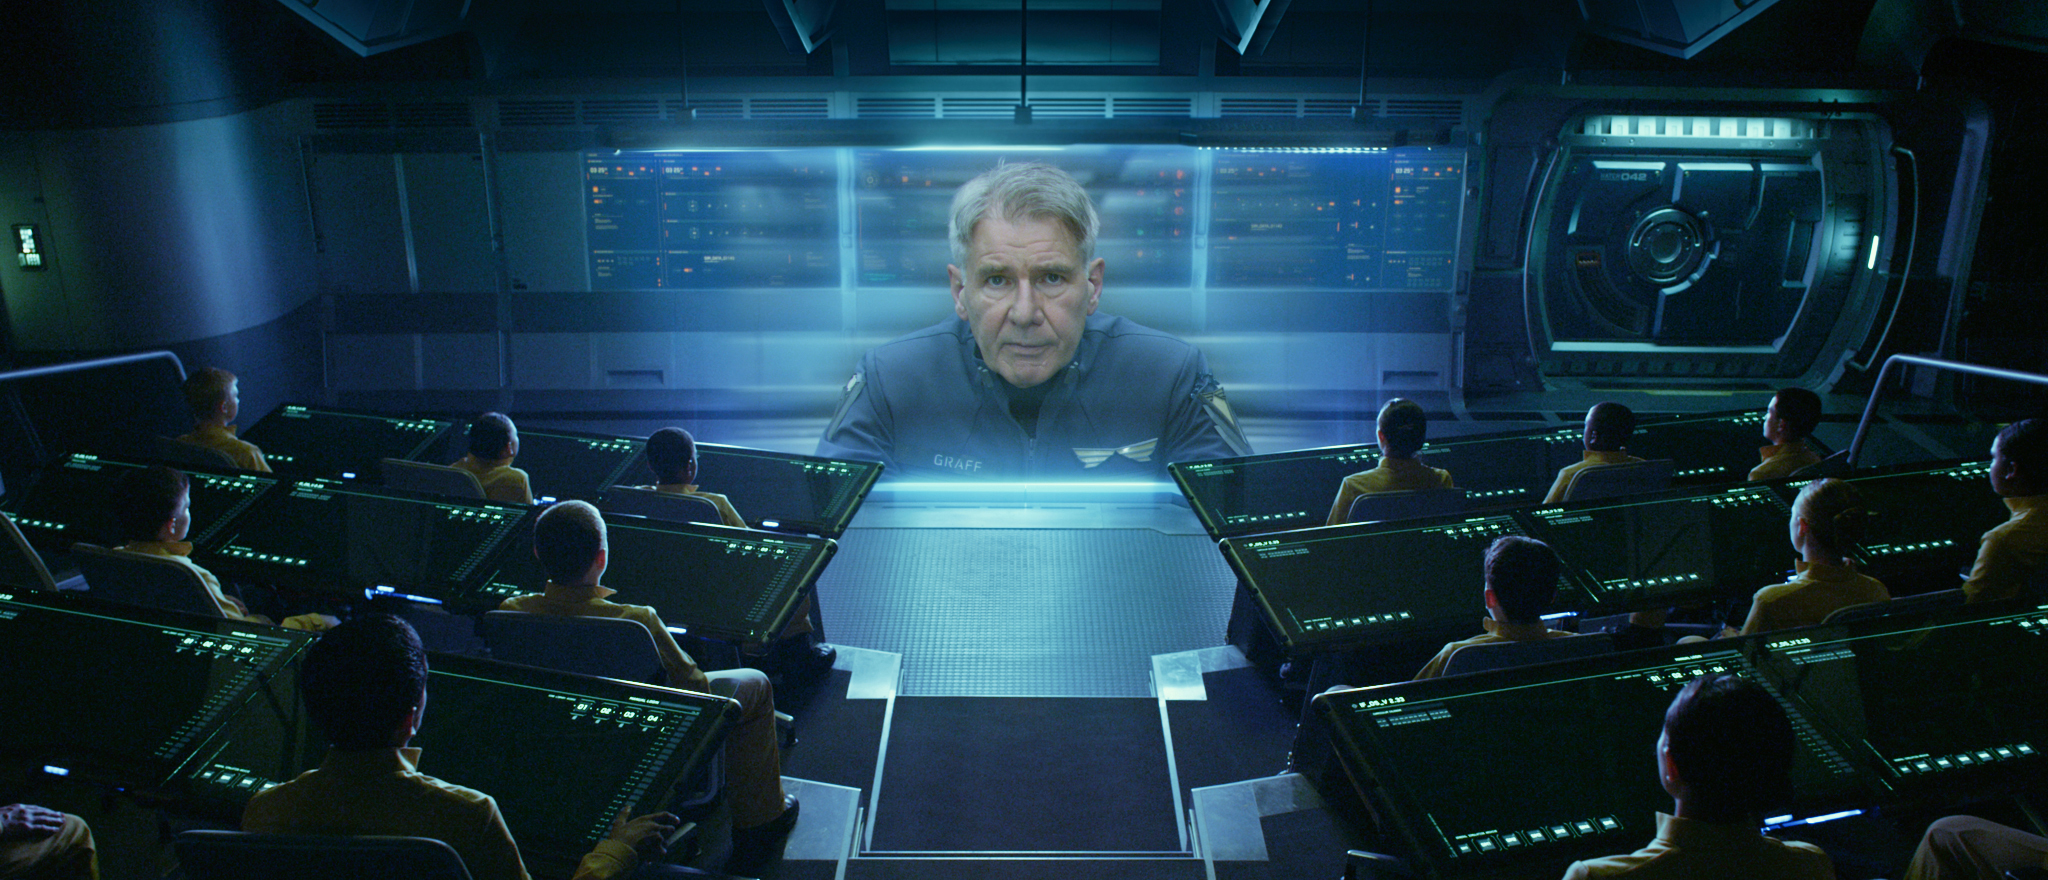 Battle School in  Ender's Game  .